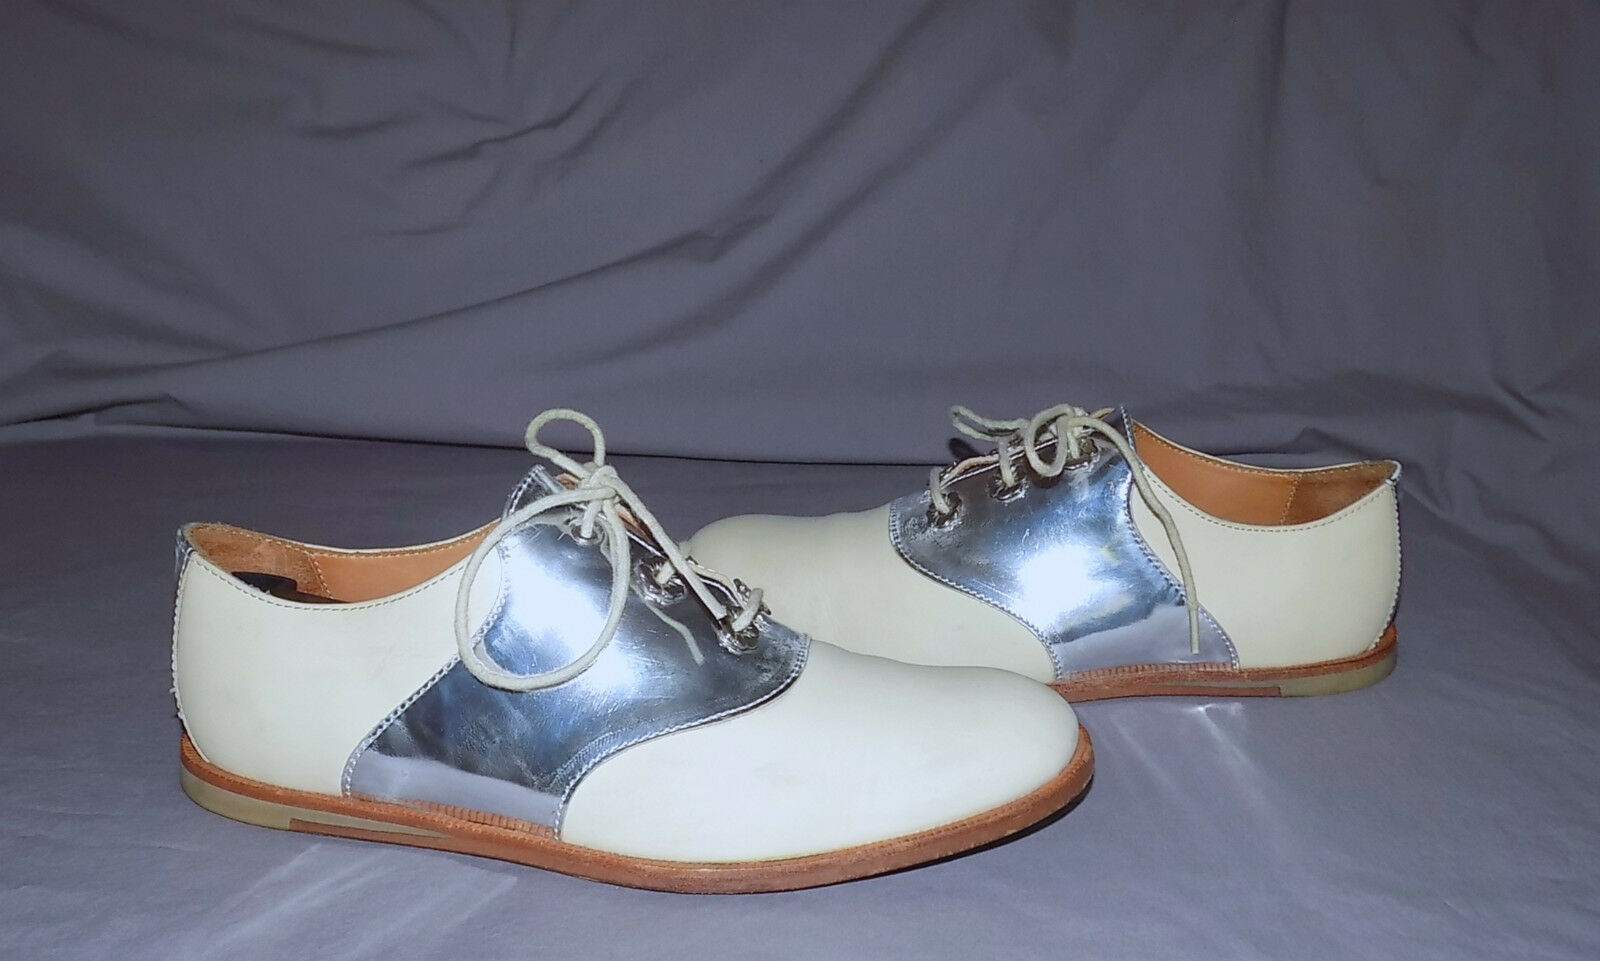 OPENING CEREMONY Leather-Beautiful Genuine Leather-Beautiful CEREMONY Oxfords-Größe7M-Beige Silber- AS IS d8e837